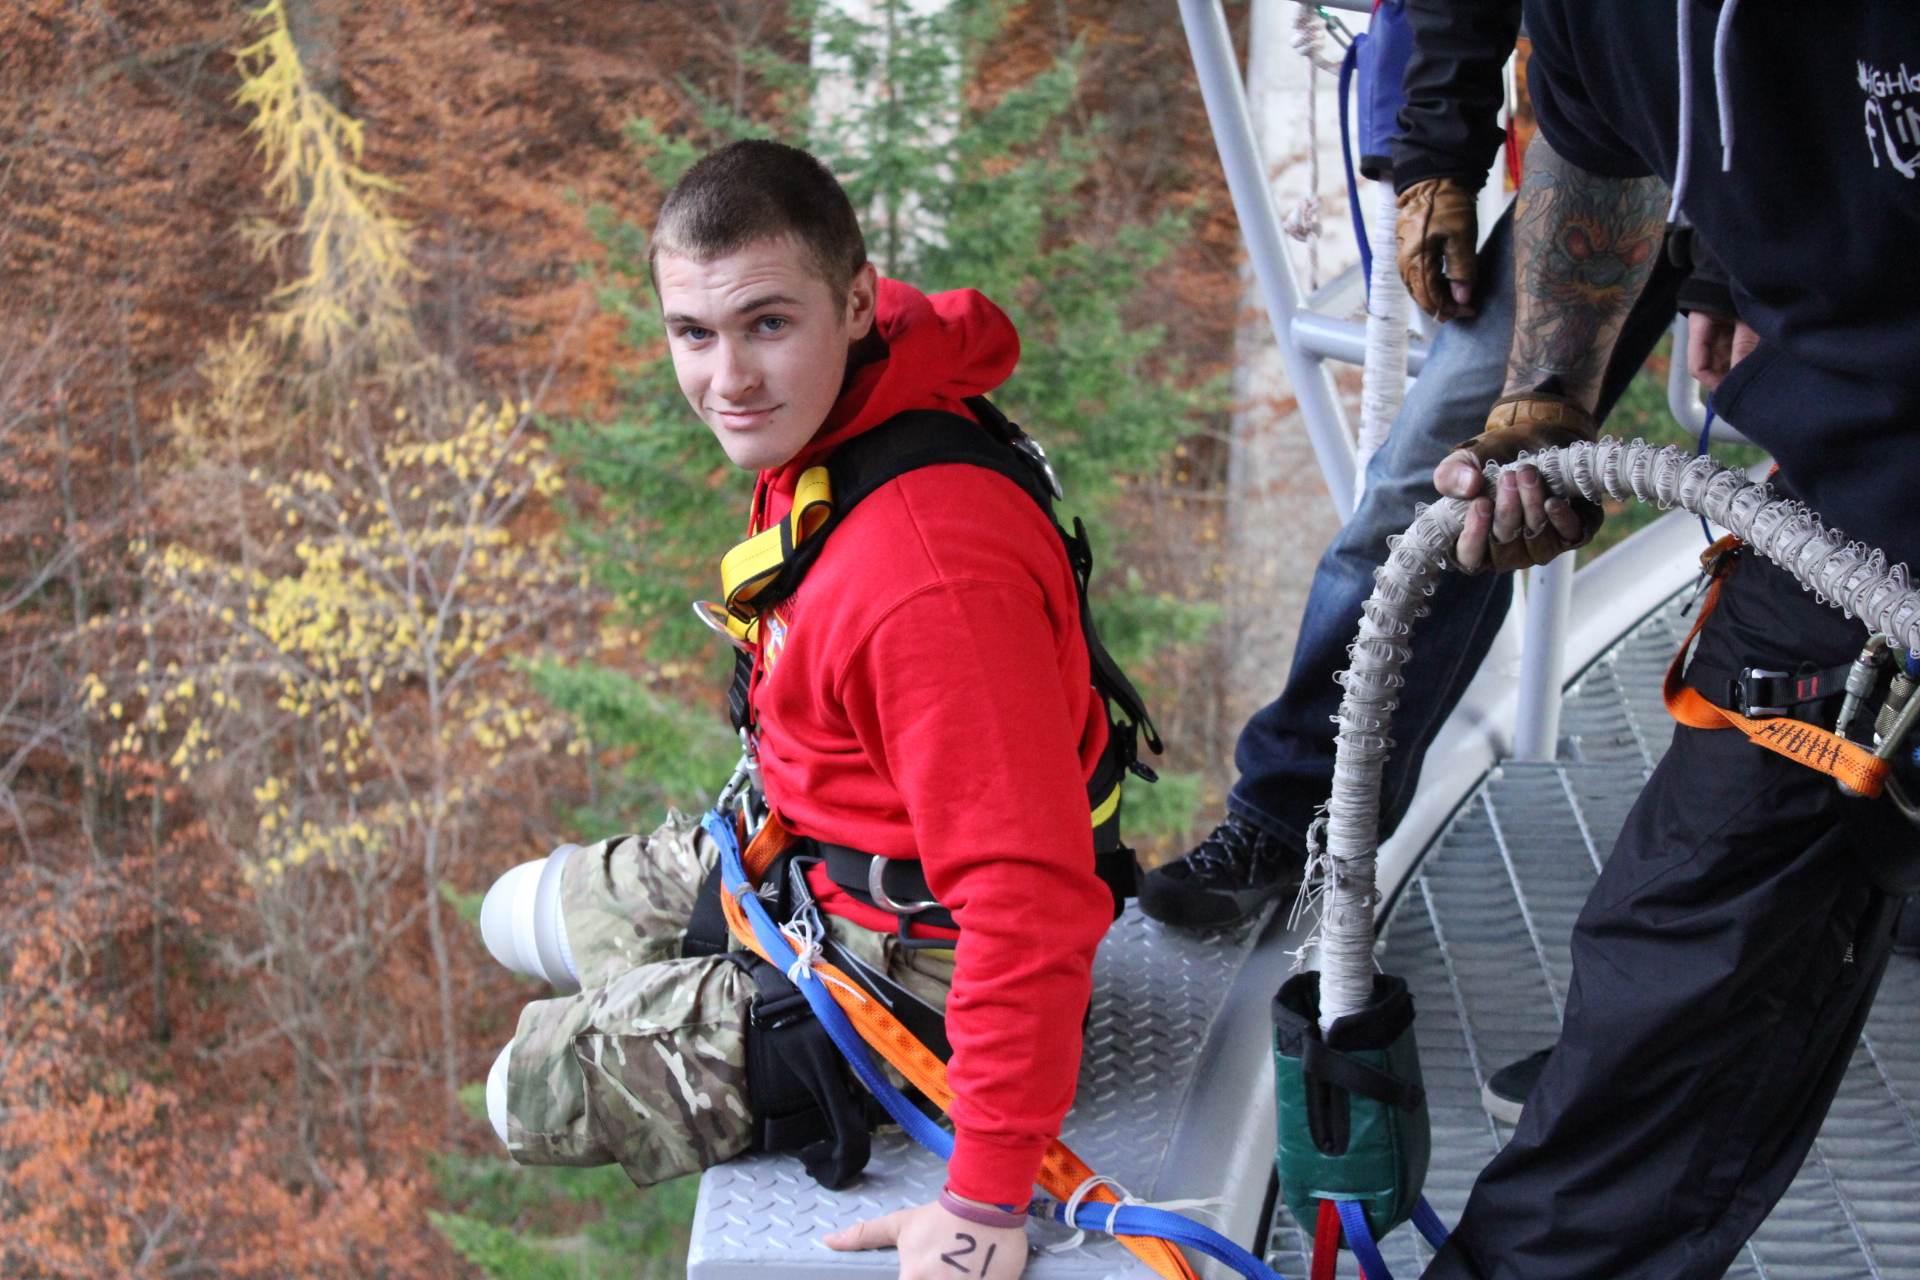 First double amputee bungee jump in Scotland